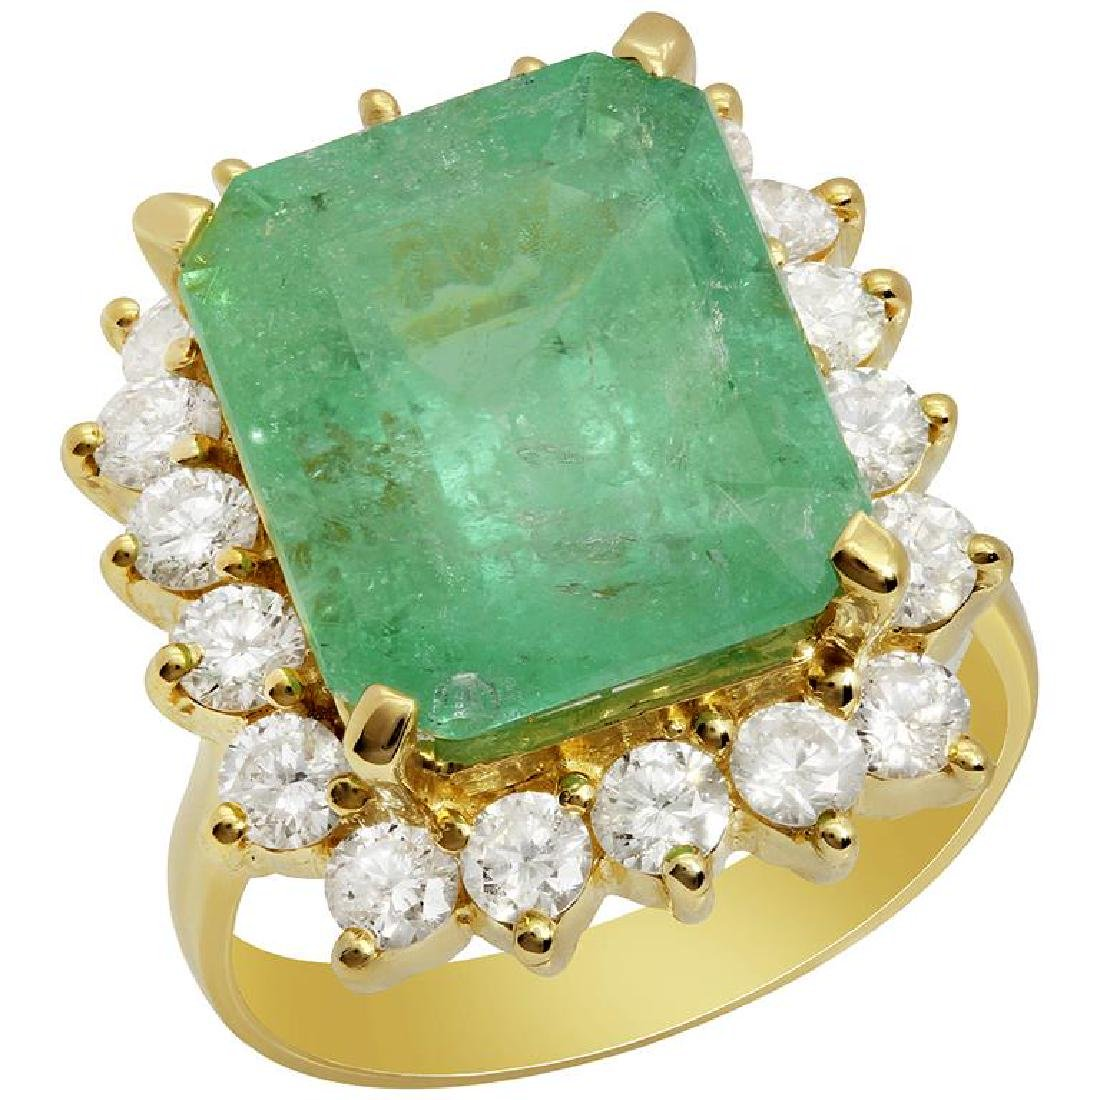 14k Yellow Gold 8.95ct Emerald 1.74ct Diamond Ring